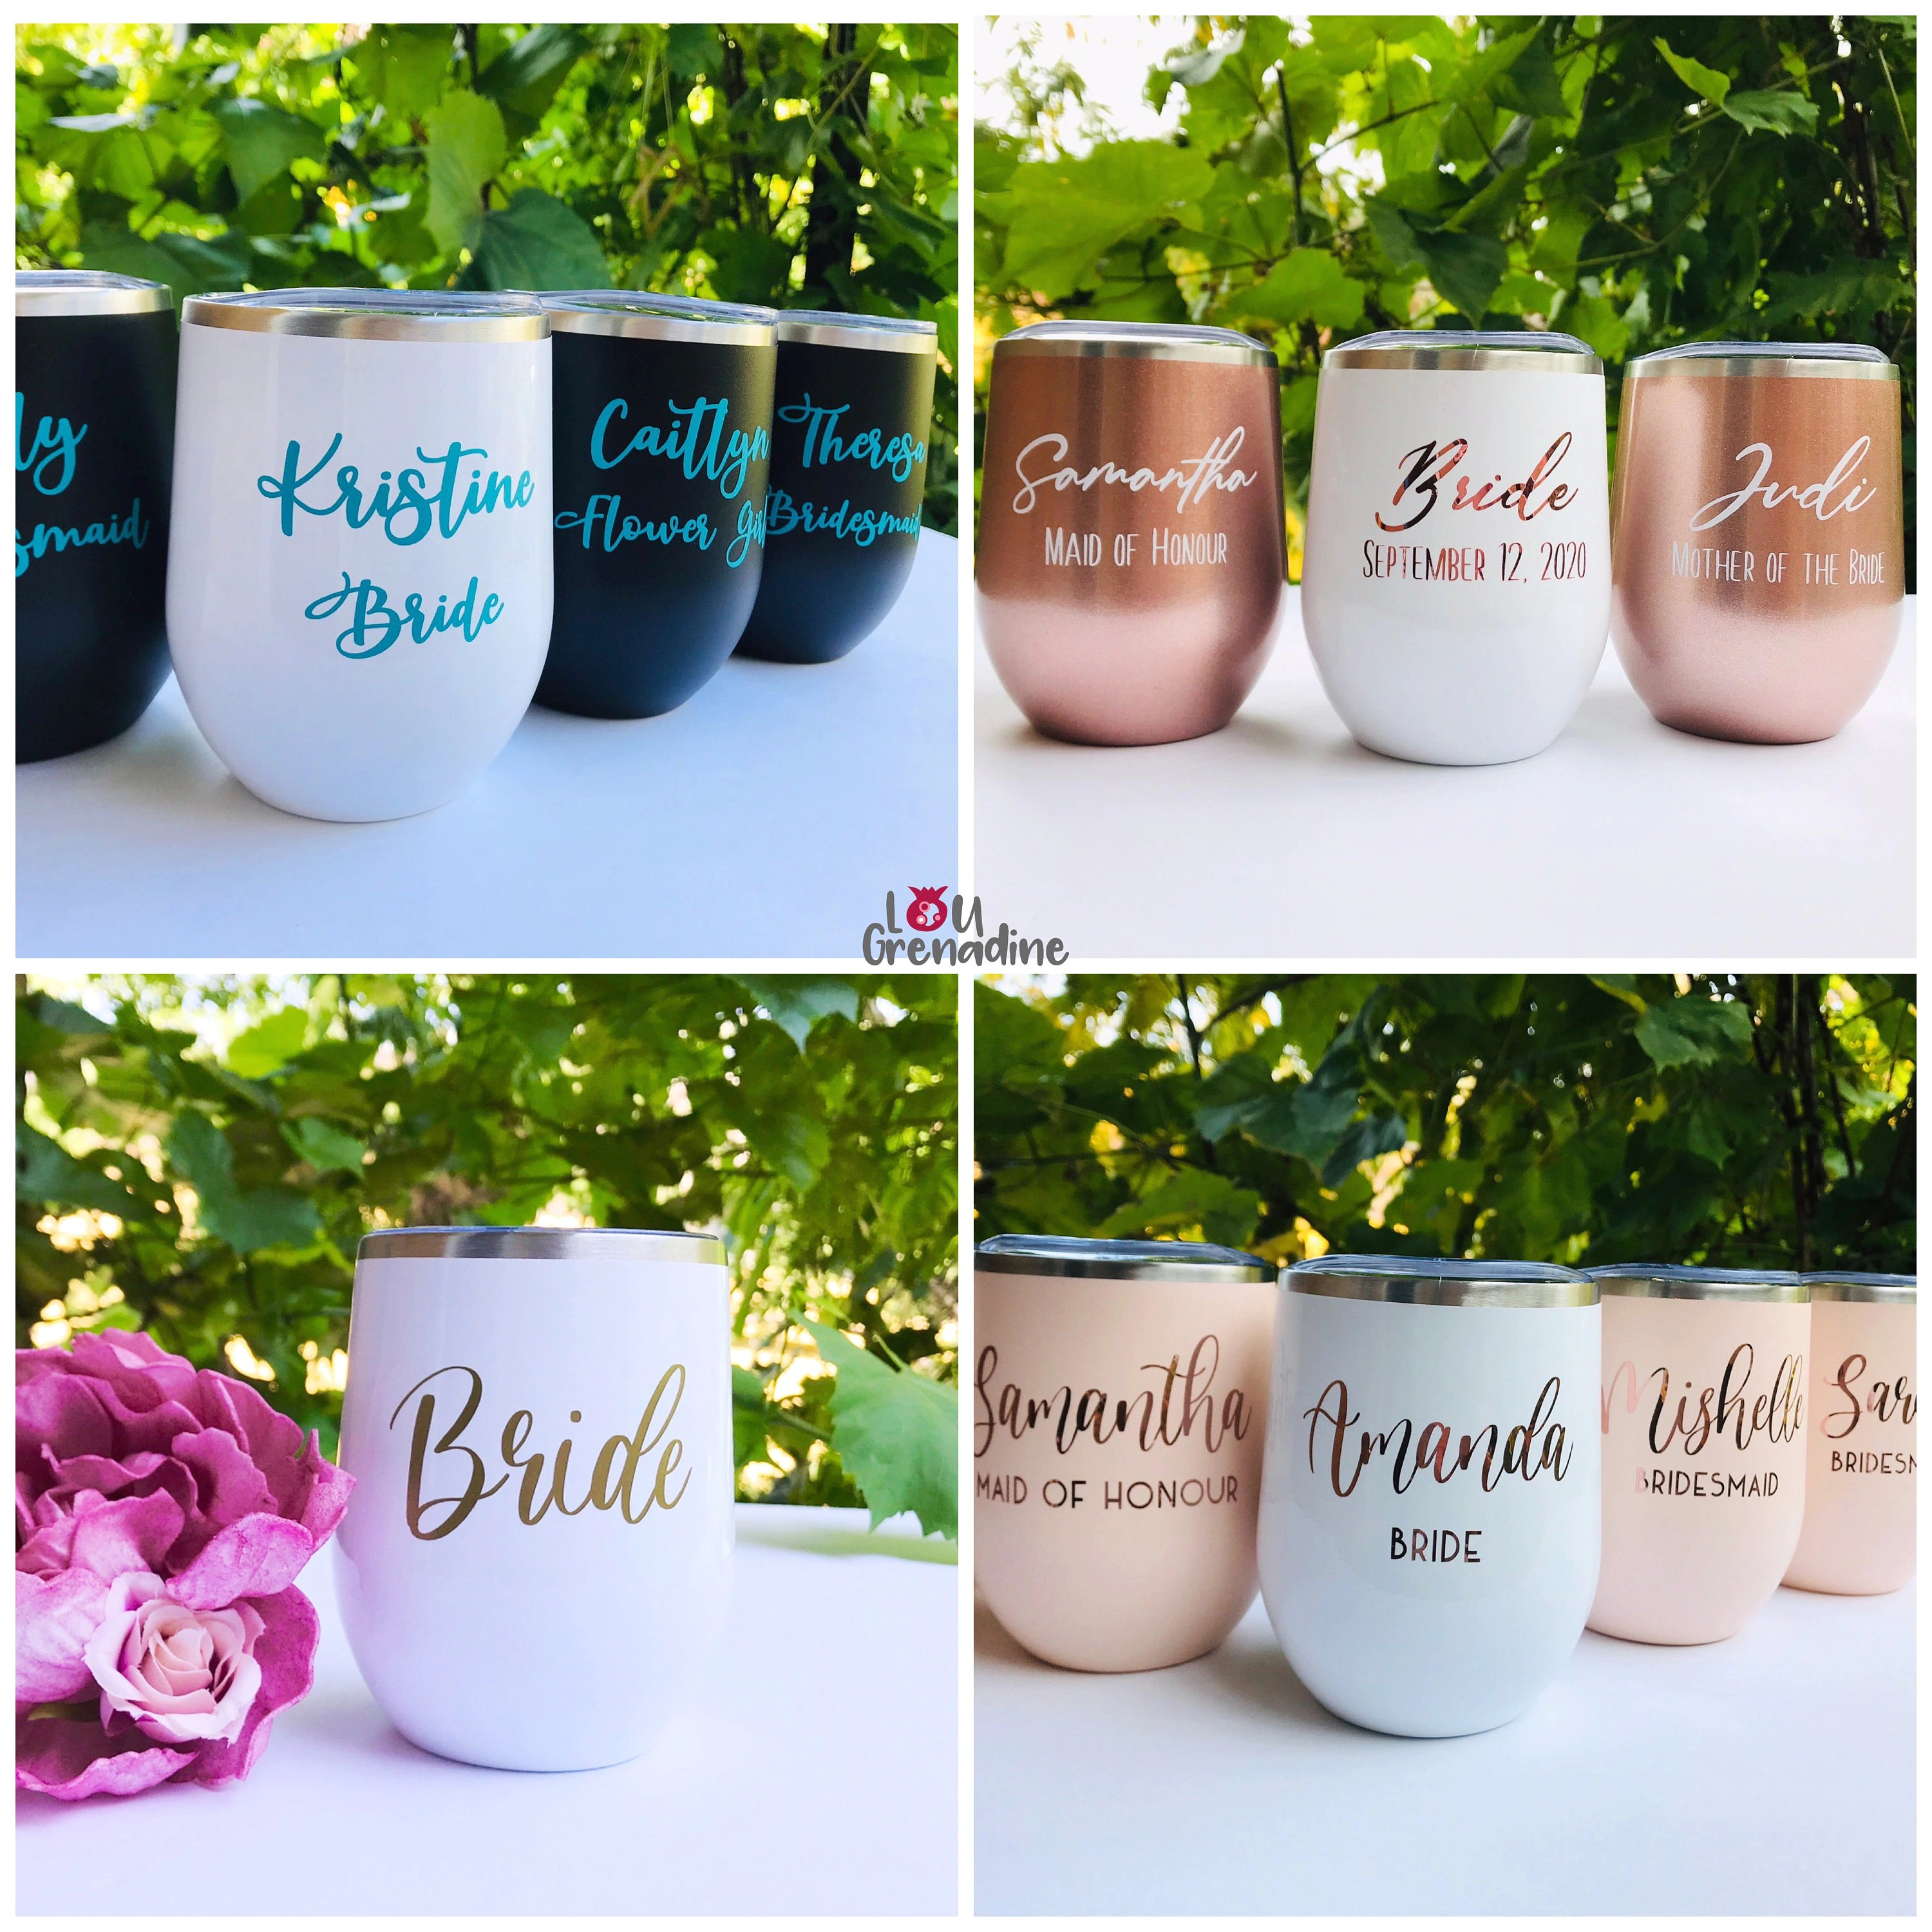 Personalized wine tumblers bachelorette party Bridesmaid image 1